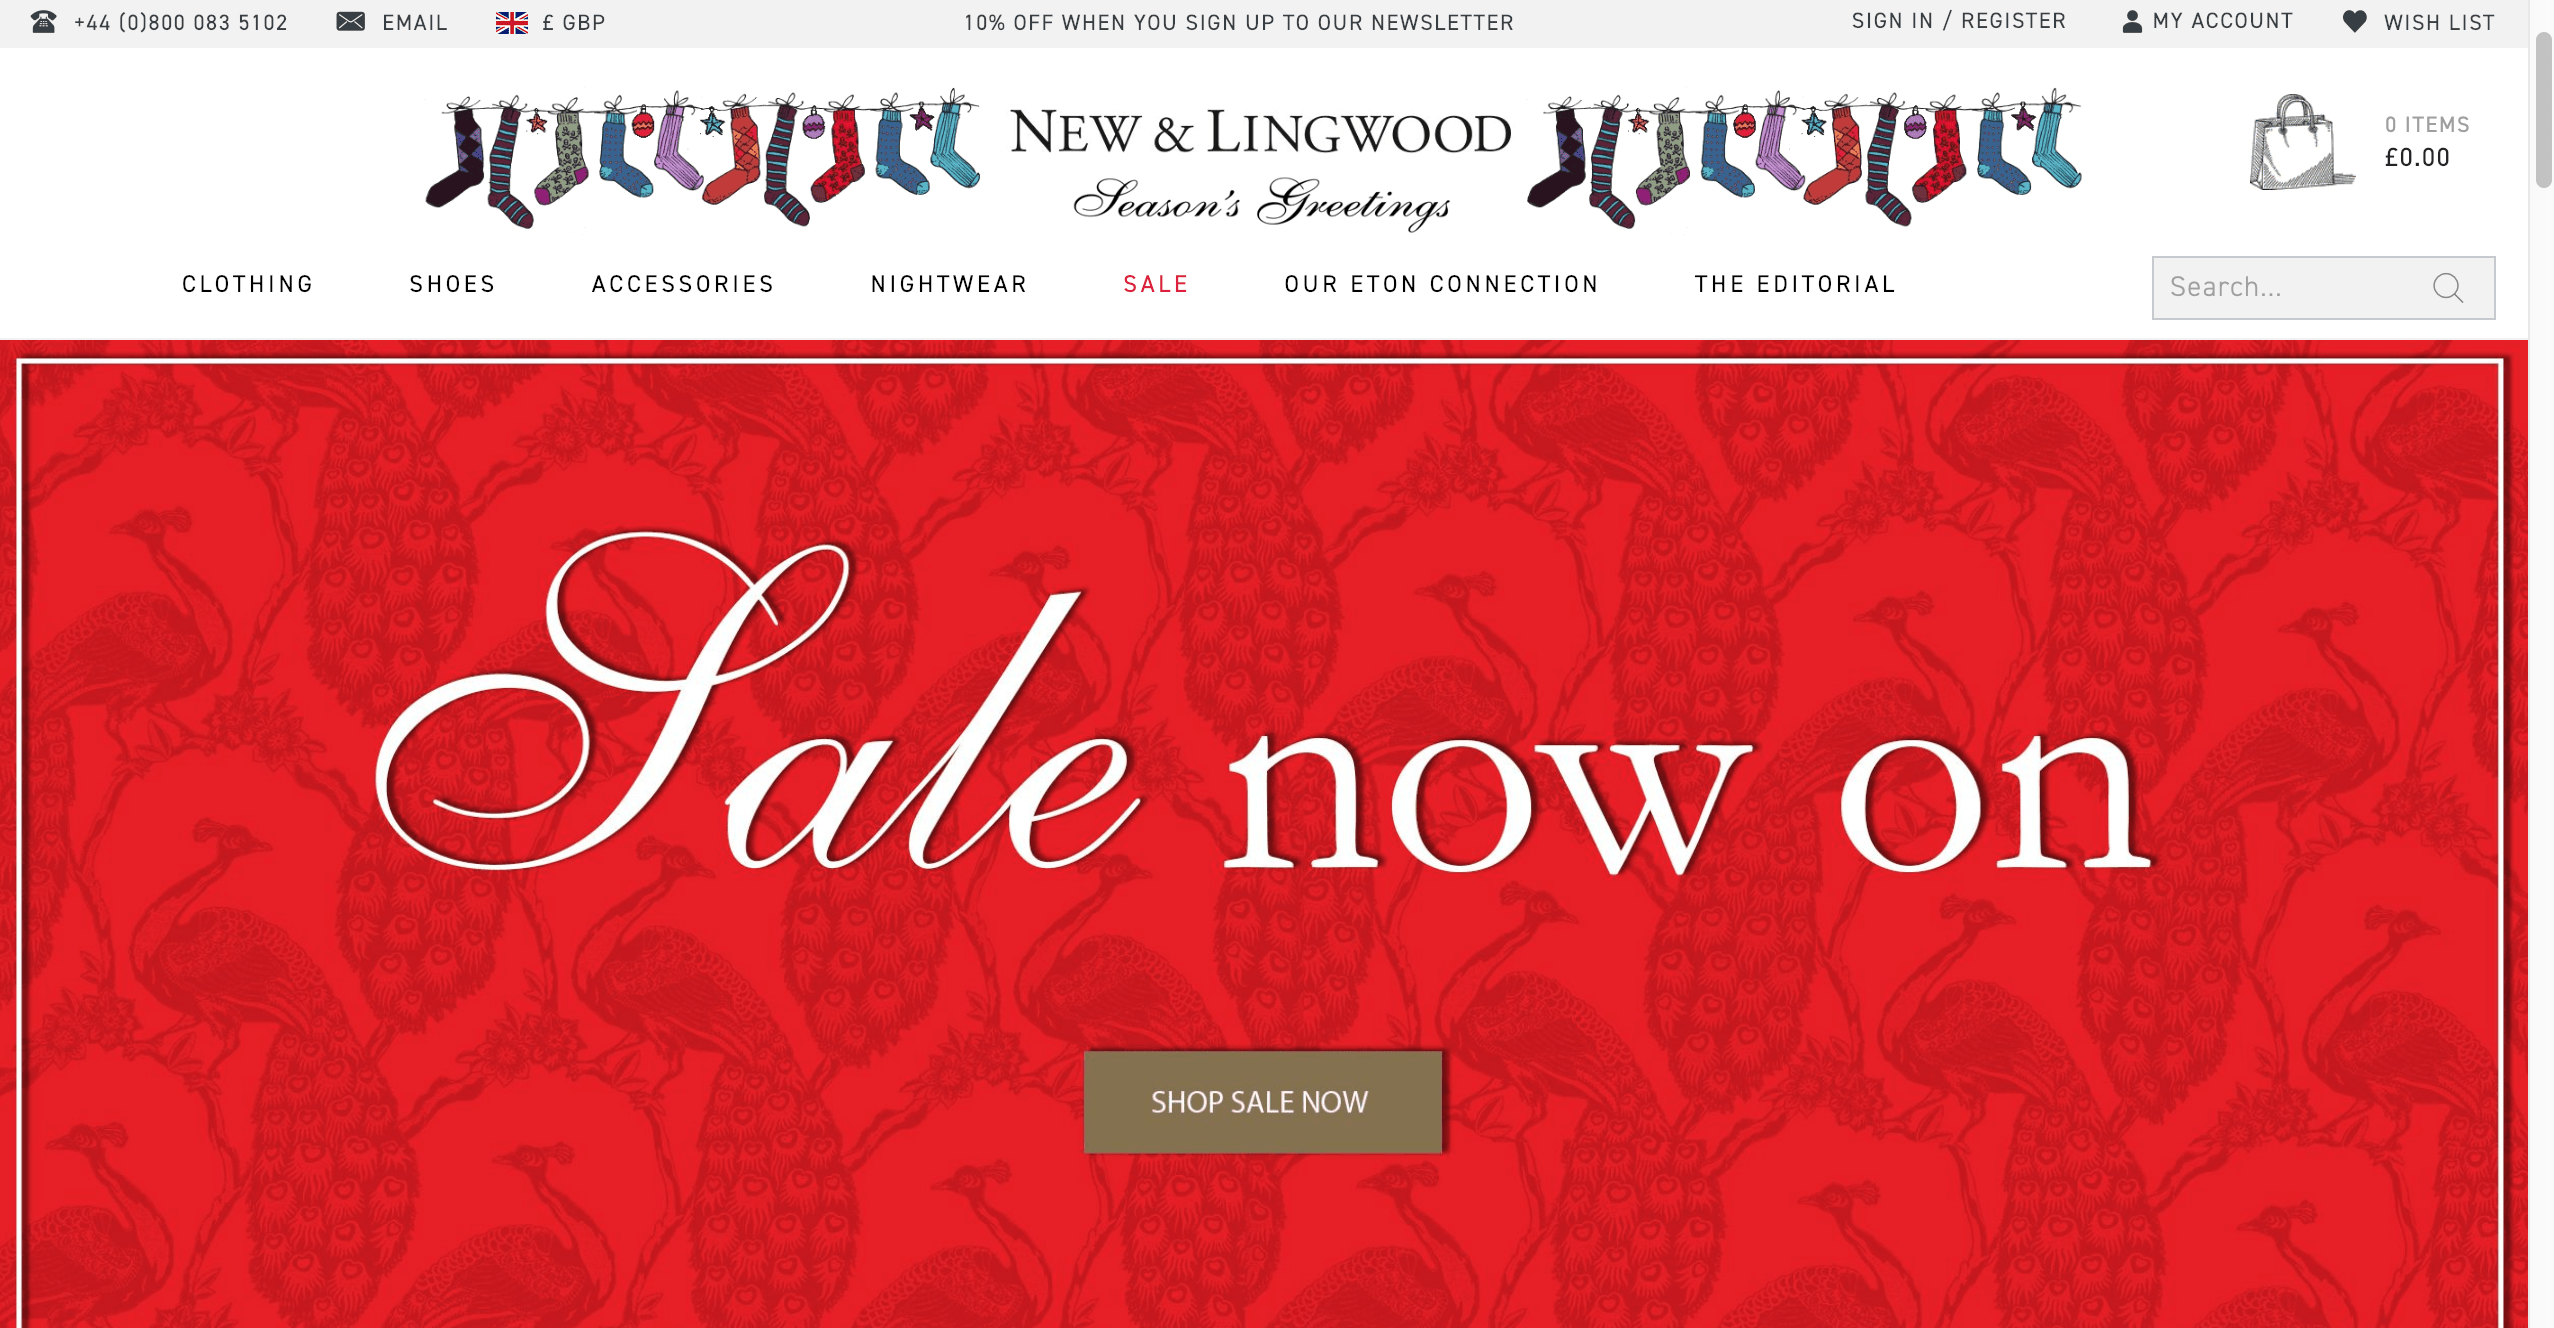 Jermyn Street-based New   Lingwood (the top picture comes from them) always  has good sales 3ea16342c61